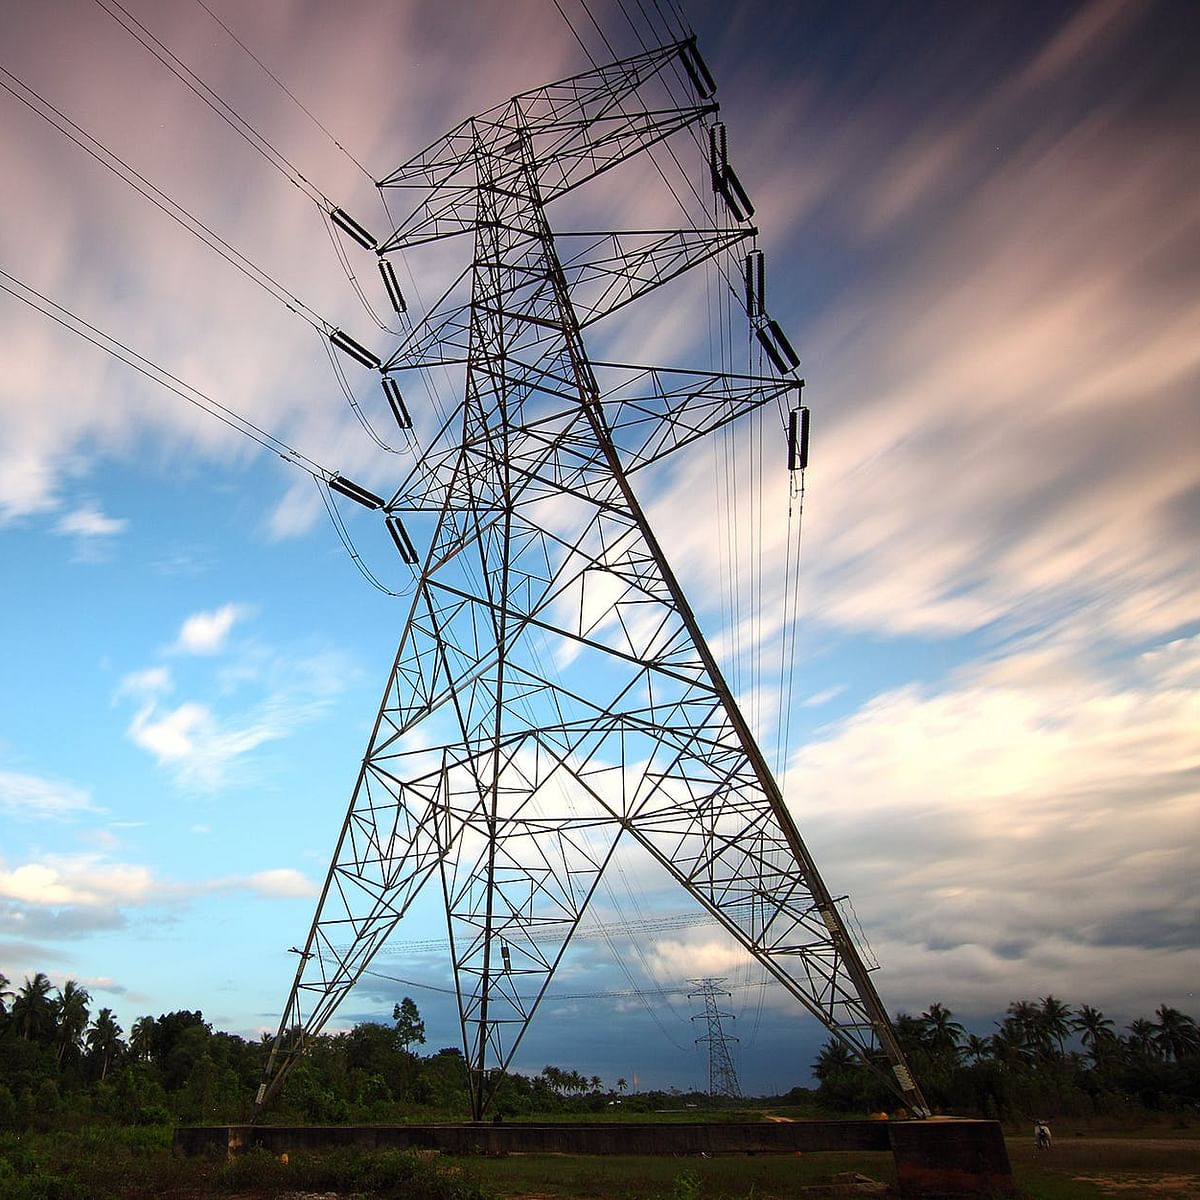 Indore: 40% decline in power complaints during lockdown, says power distribution company